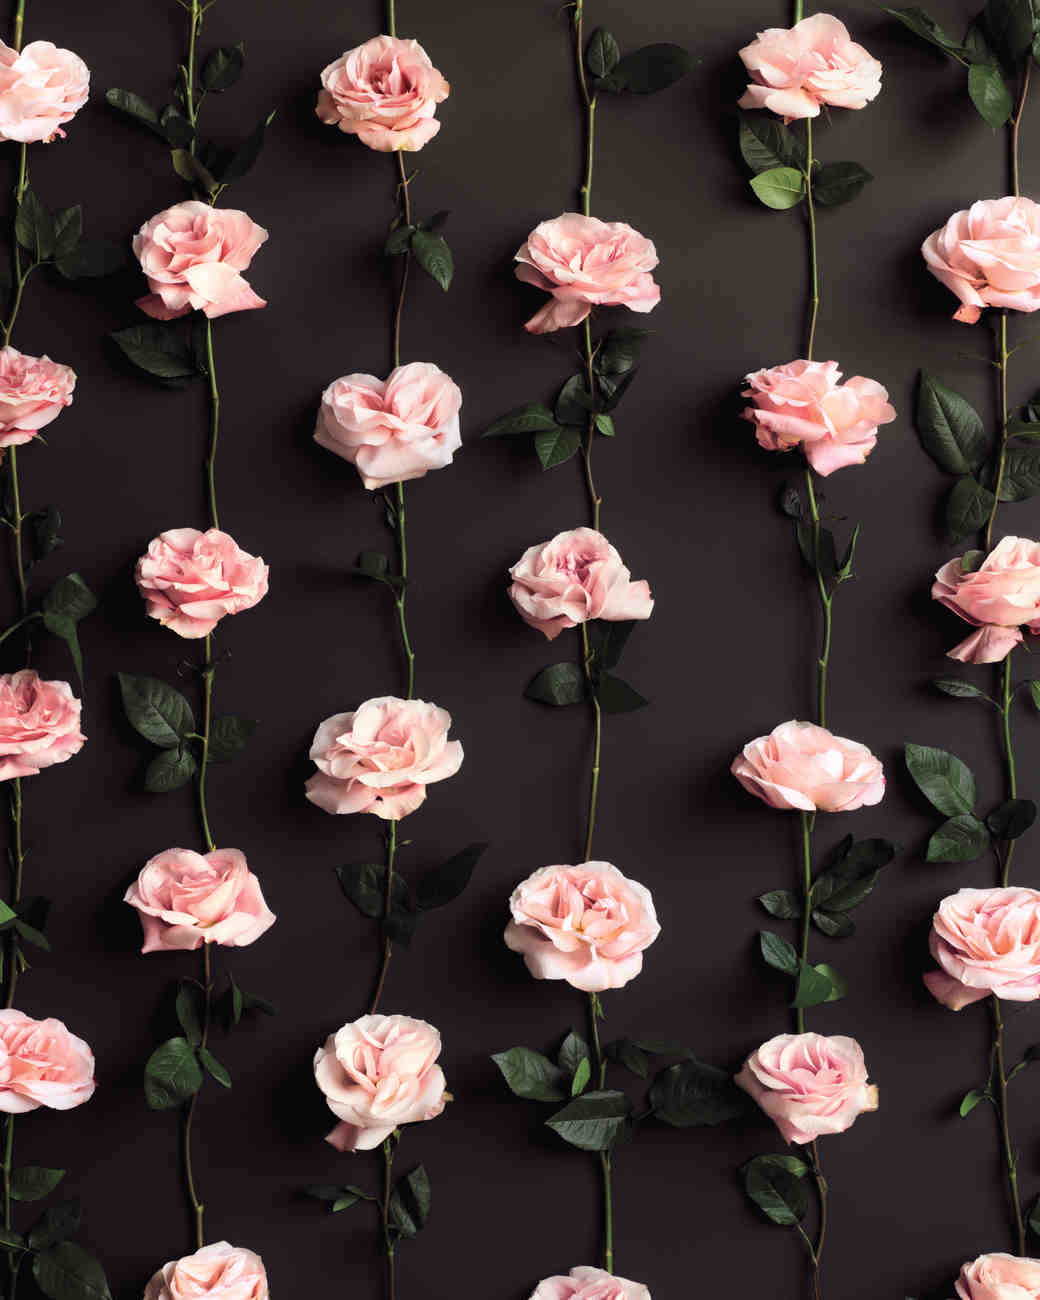 5 spectacular flower walls to inspire your own wedding backdrop 5 spectacular flower walls to inspire your own wedding backdrop martha stewart weddings mightylinksfo